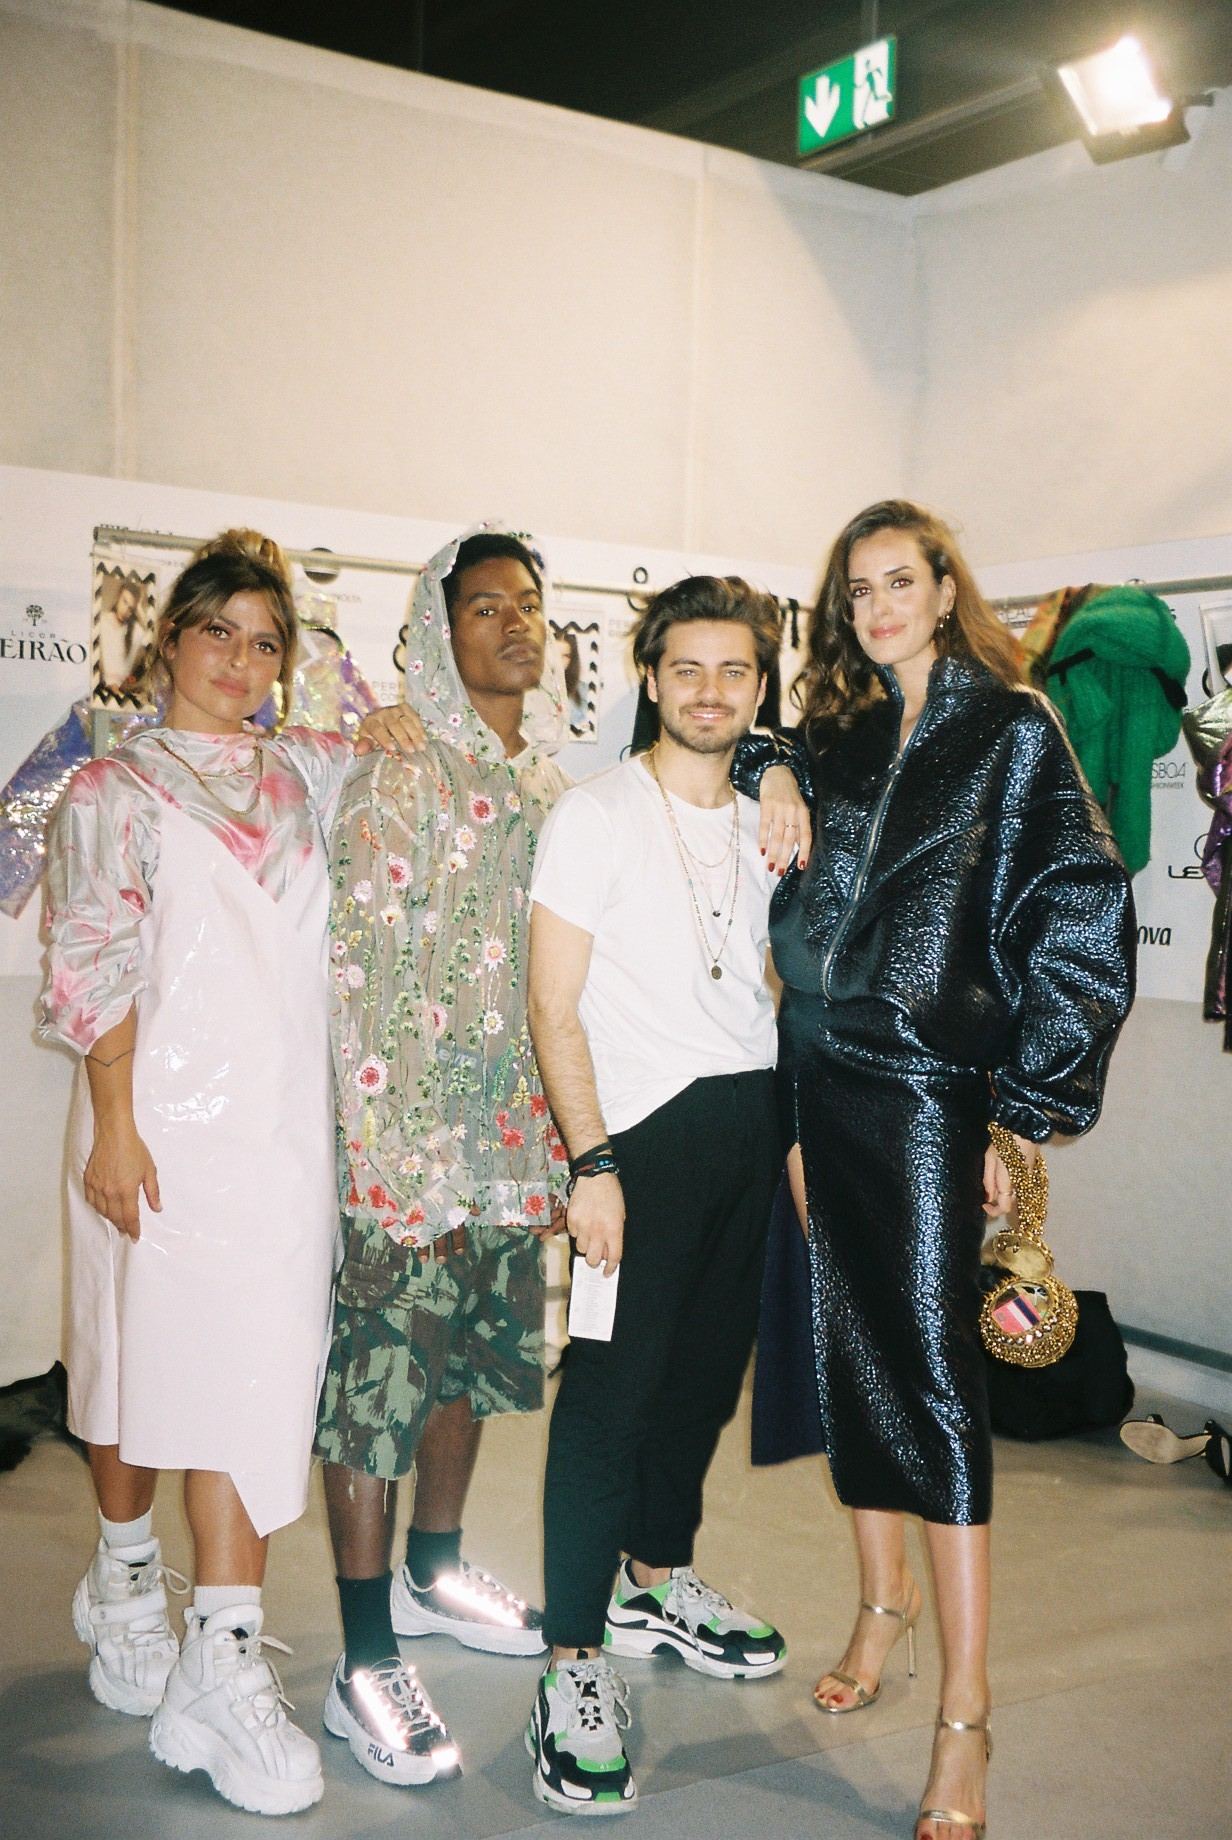 Maria Sampaio, Gonçalo Cabral, Goncalo Peixoto and myself at Lisbon's fashion week backstage.  /Maria Sampaio, Gonçalo Cabral, Goncalo Peixoto e eu no backstage da ModaLisboa.